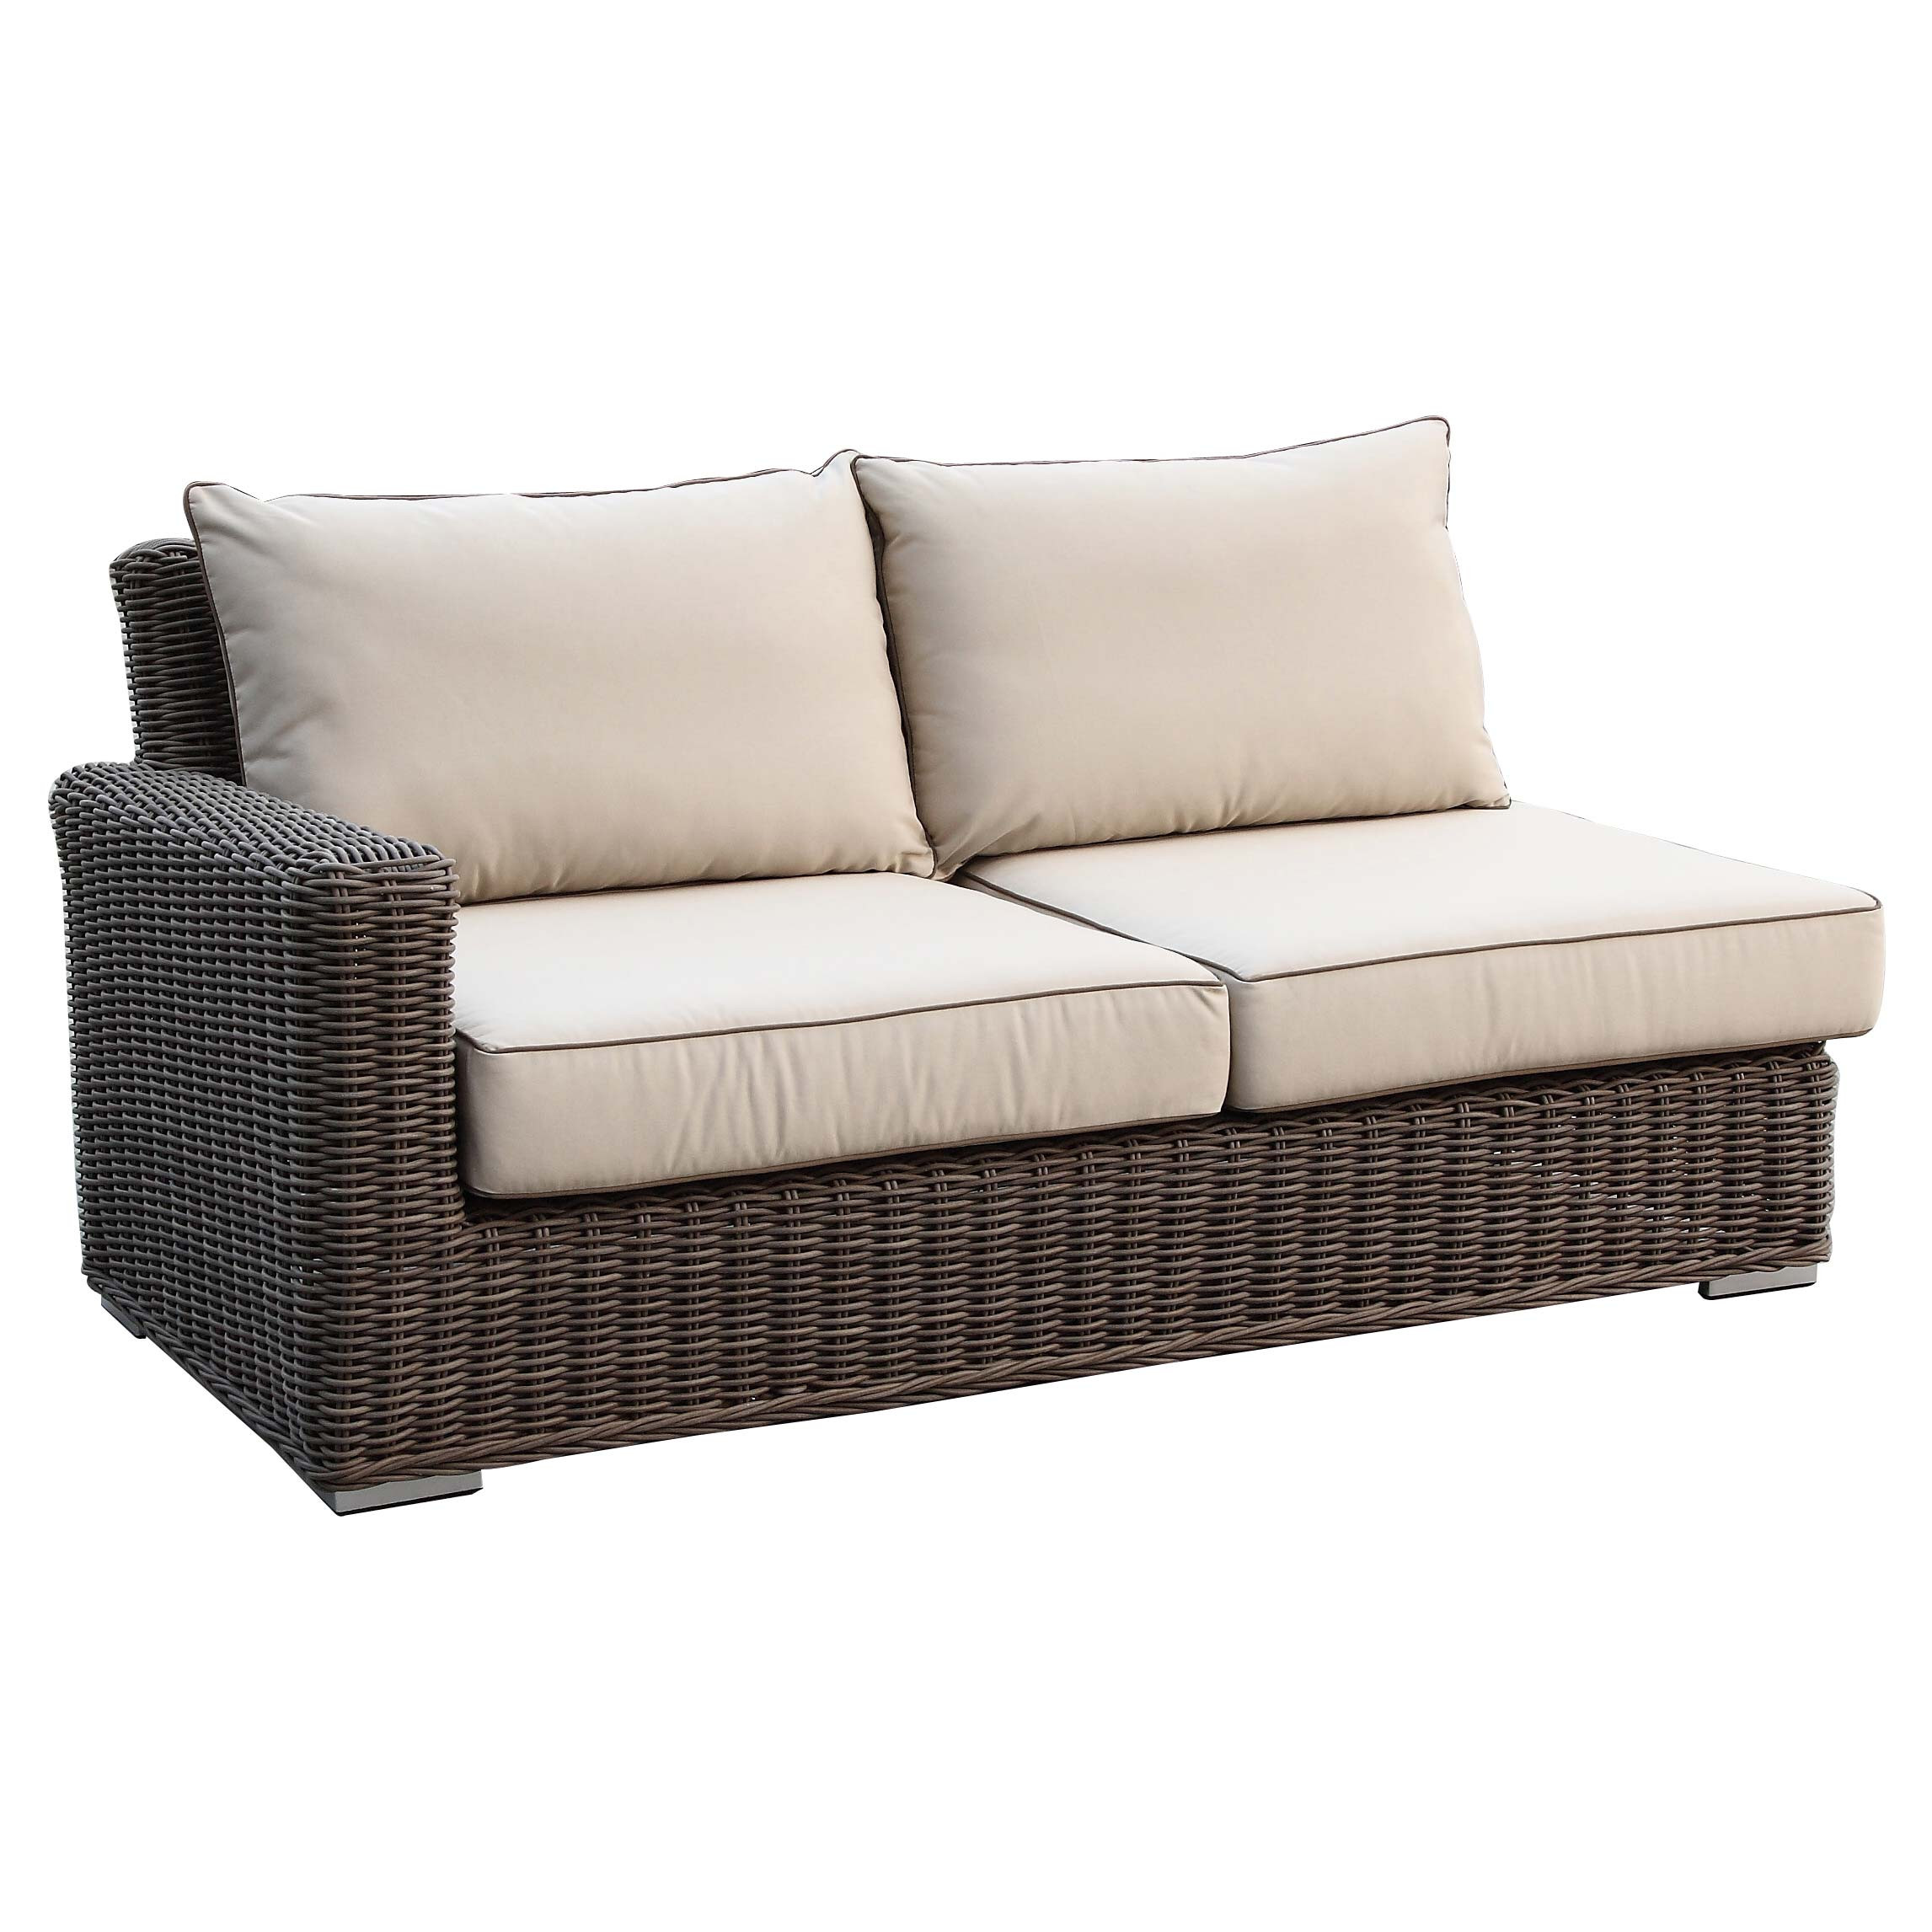 of bomelconsult outdoor furniture patio lovely loveseat unique wicker sectional